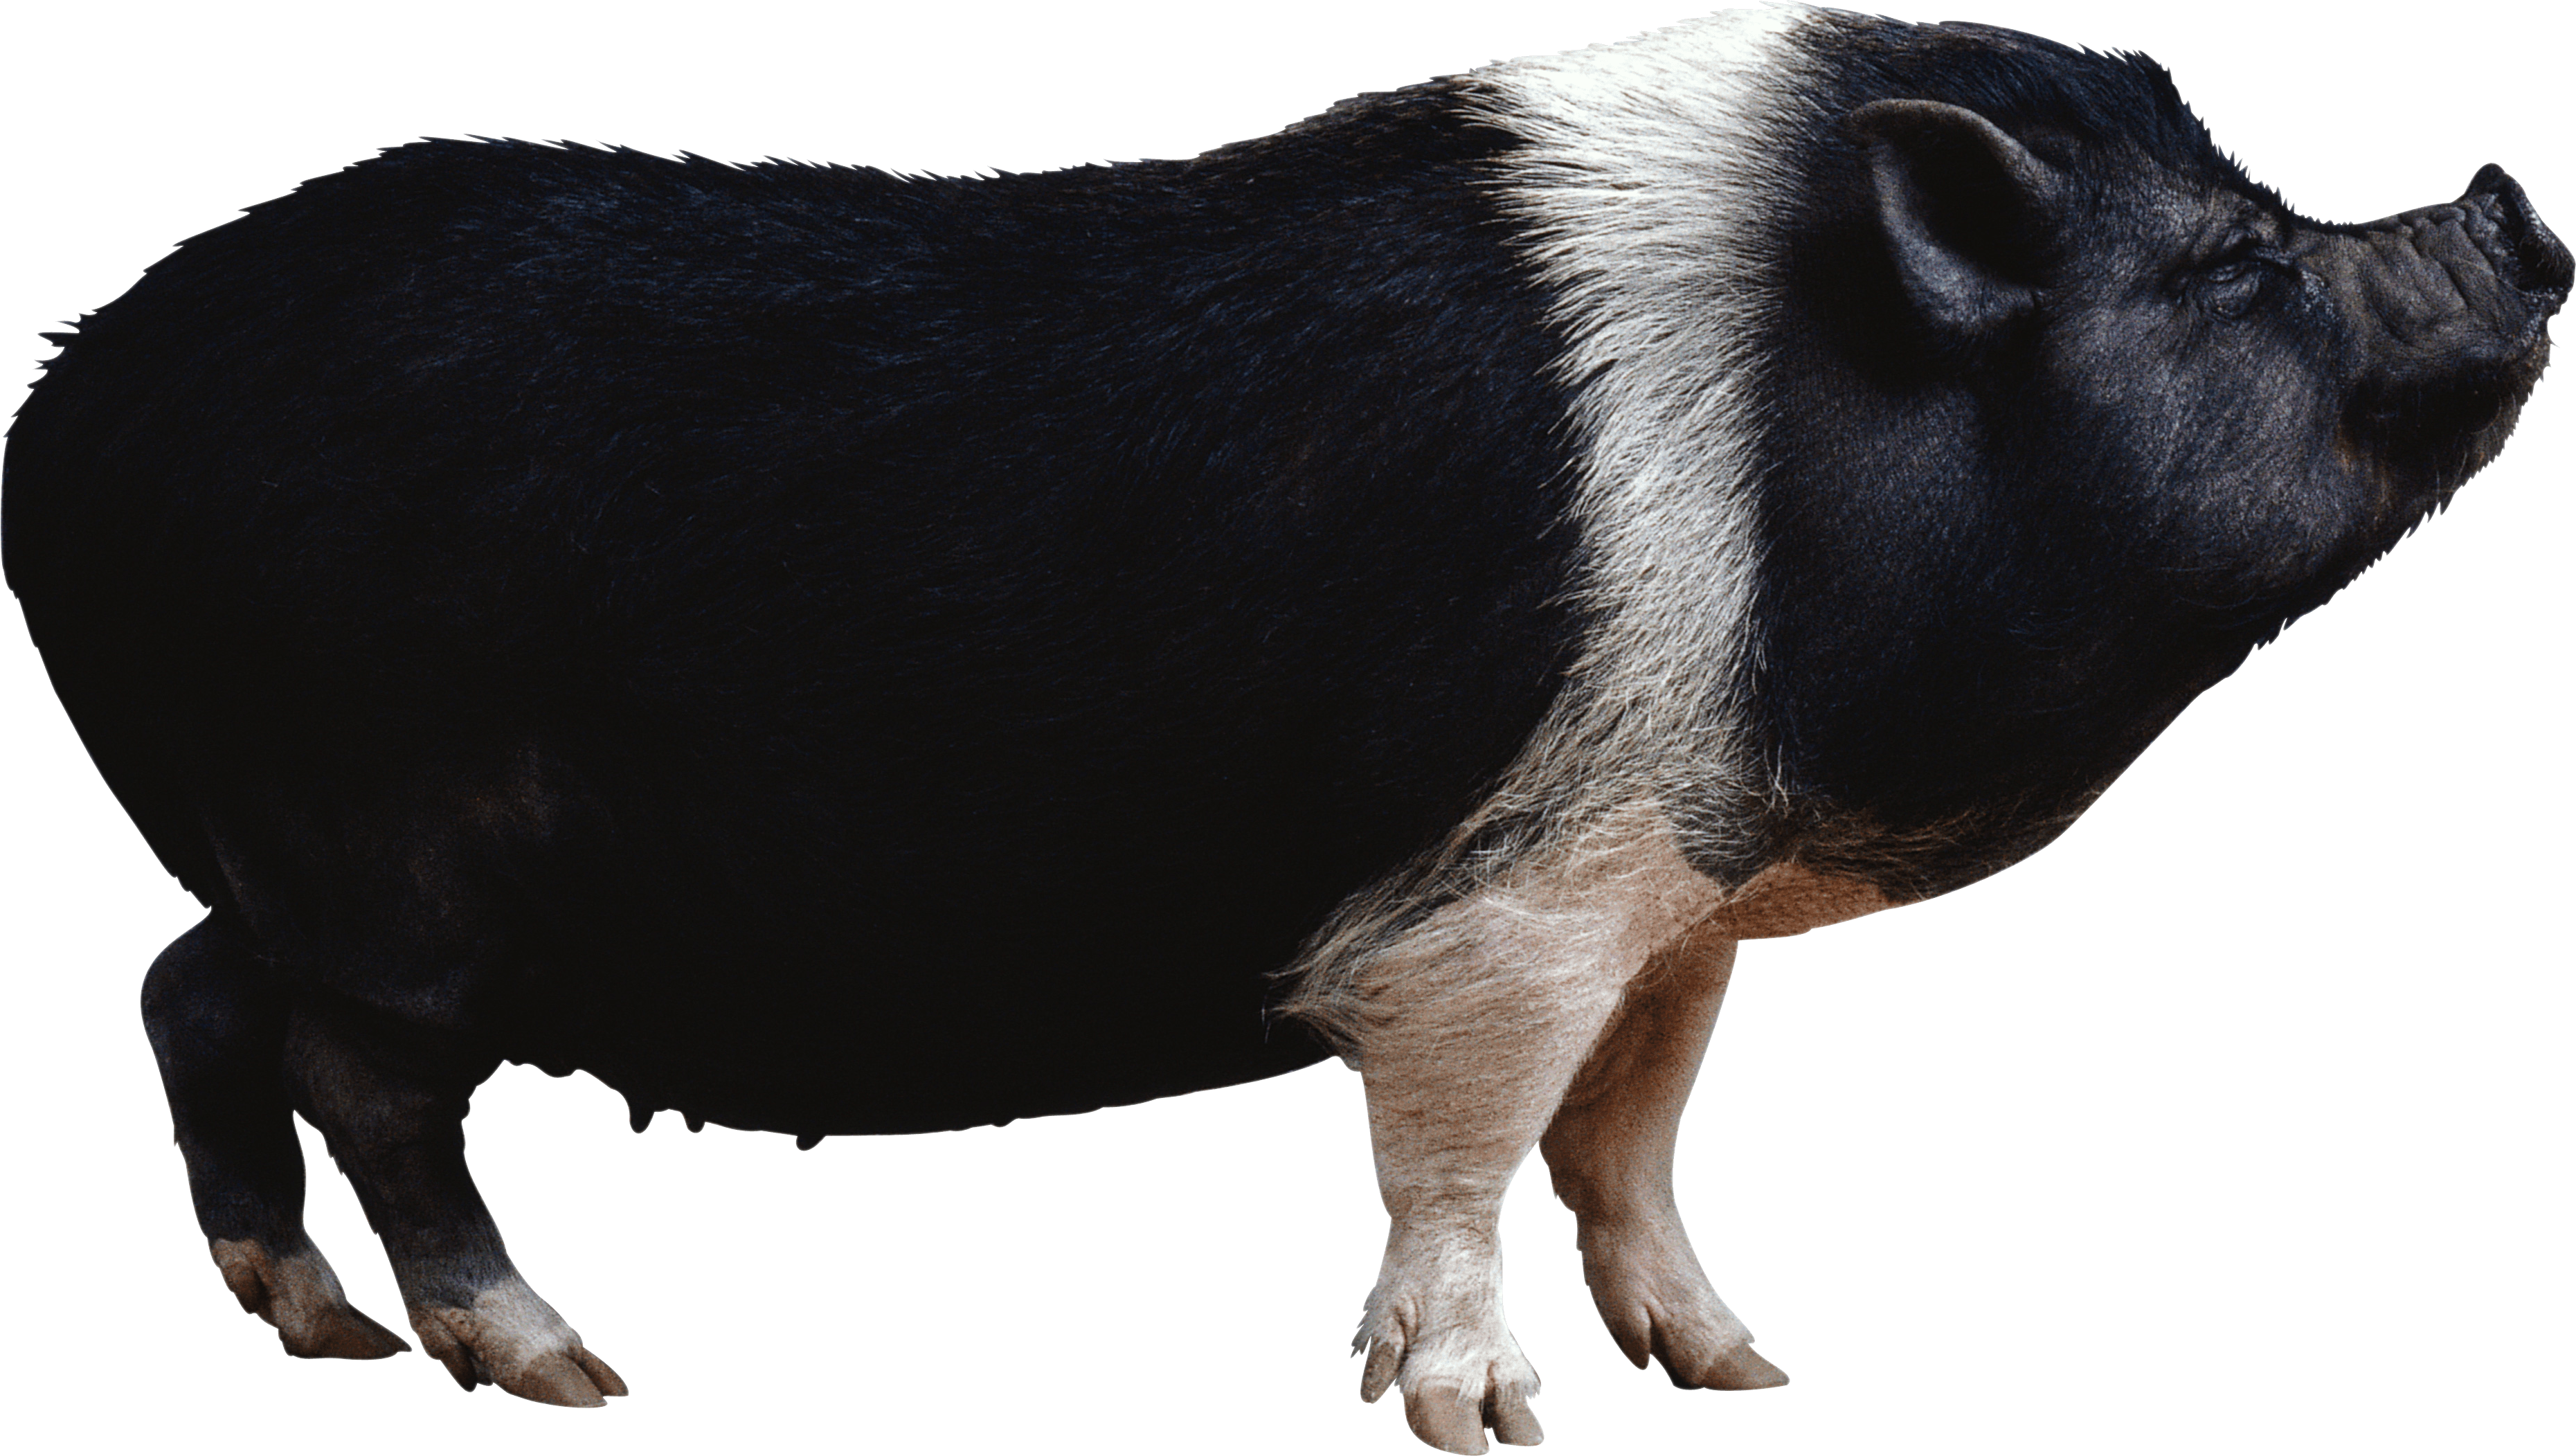 Black pig from side